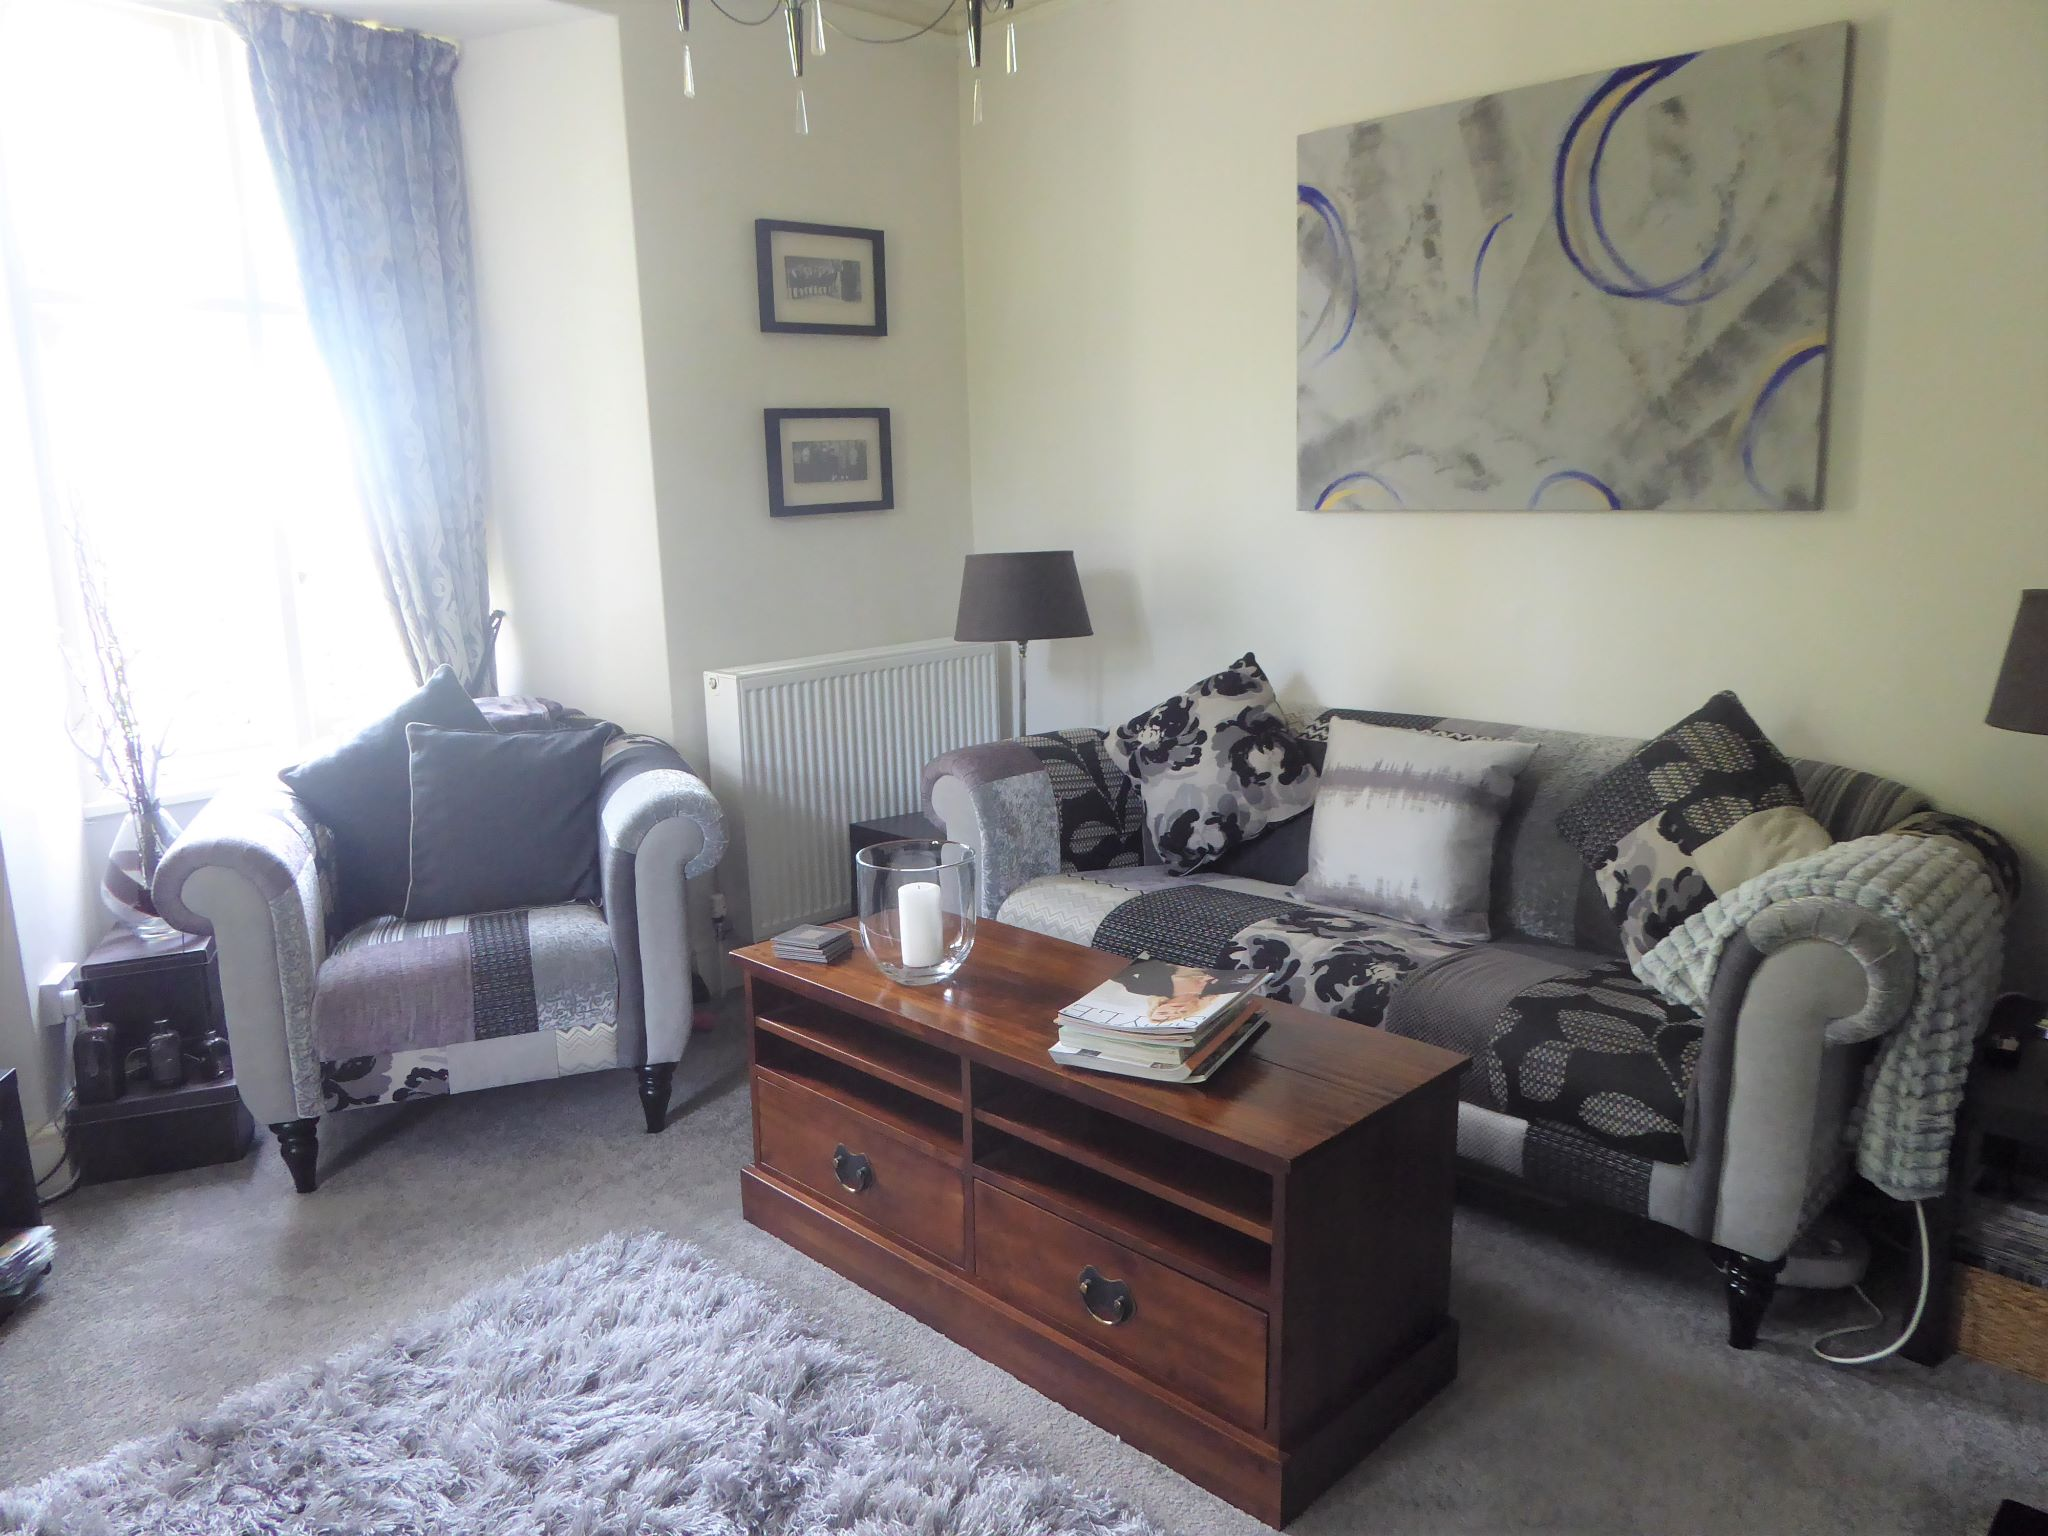 2 bedroom cottage house SSTC in Abergele - Photograph 3